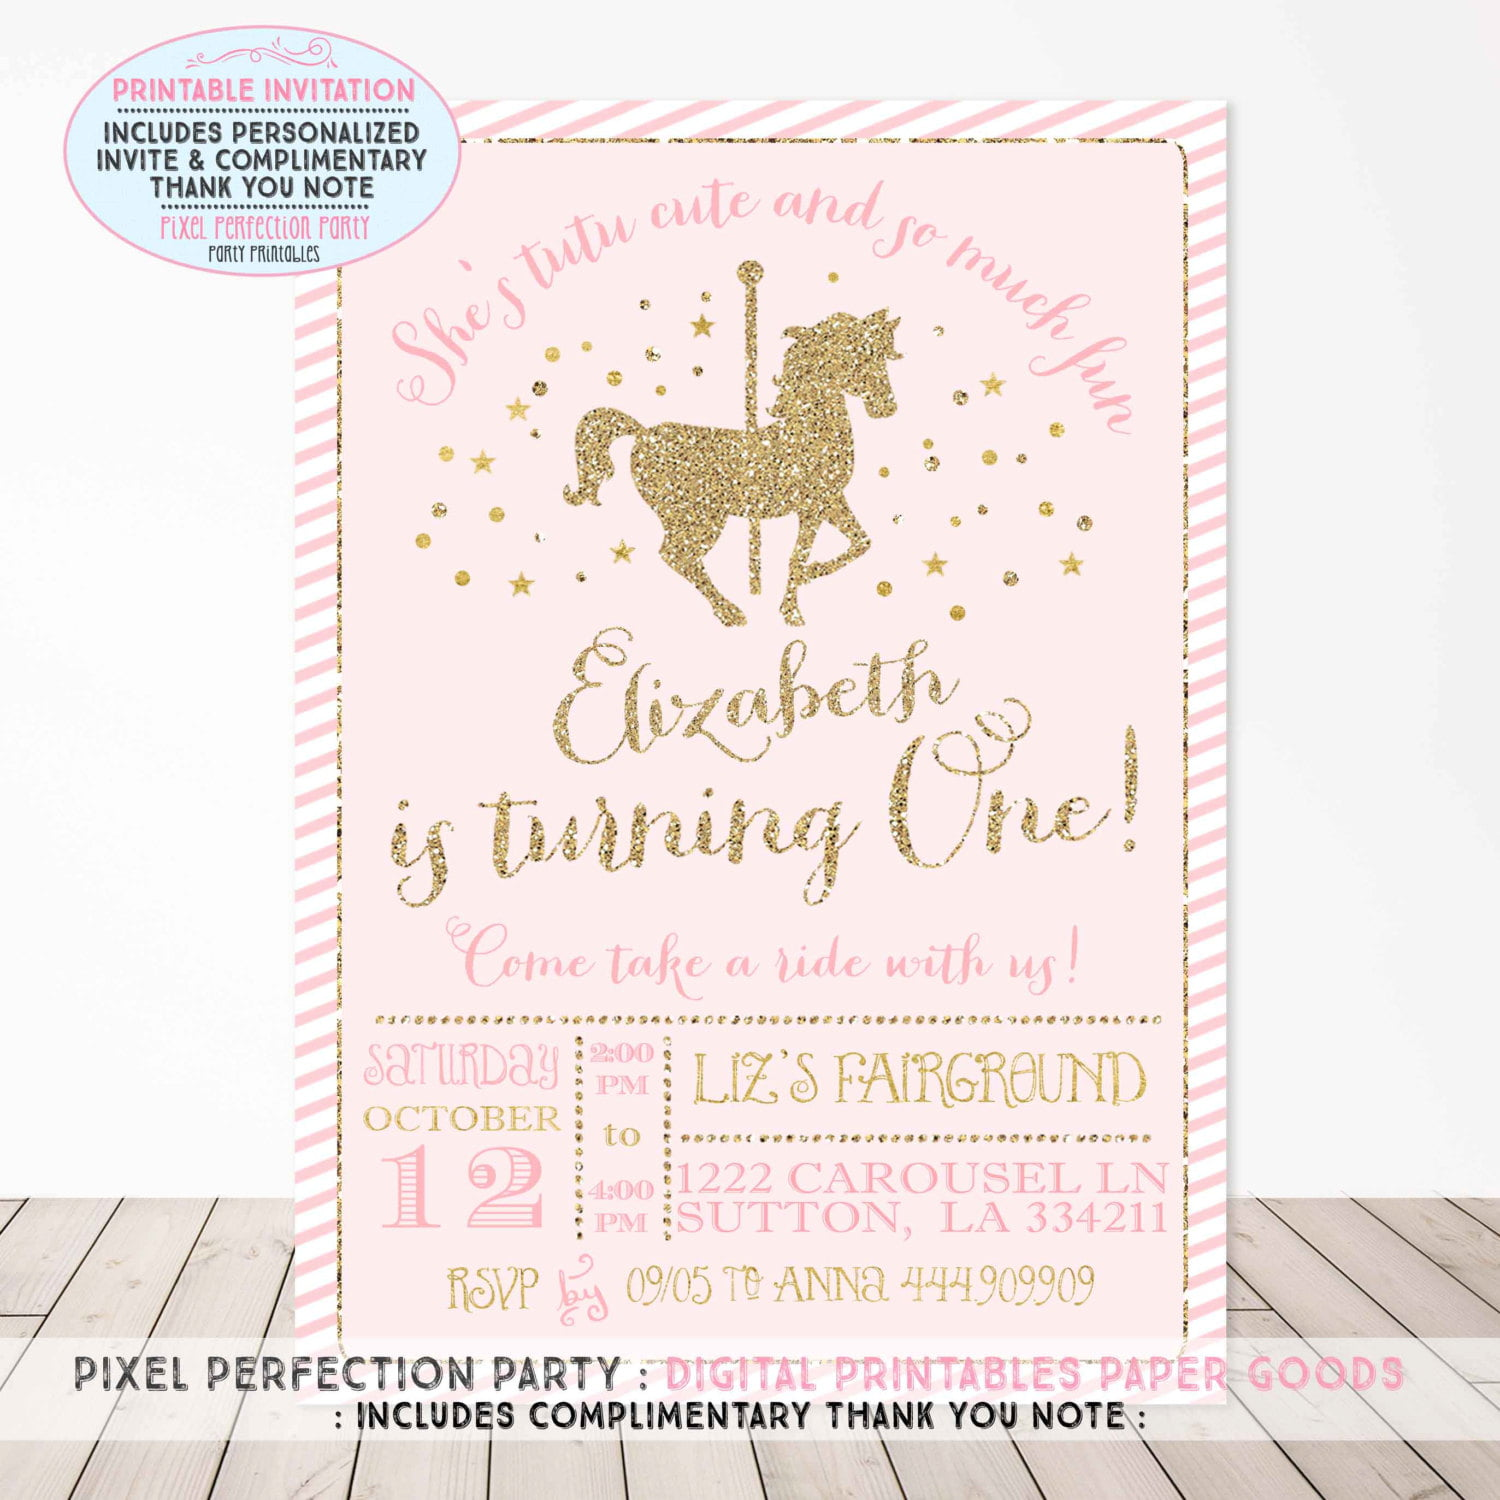 Free Thank You Cards Print in addition Pink Royal Princess Birthday Party also Bohemian Coachella Inspired Birthday Party as well 18 Holiday Gifts For Students That Wont Break The Bank together with Carousel Birthday Invitations. on graduation party free printables